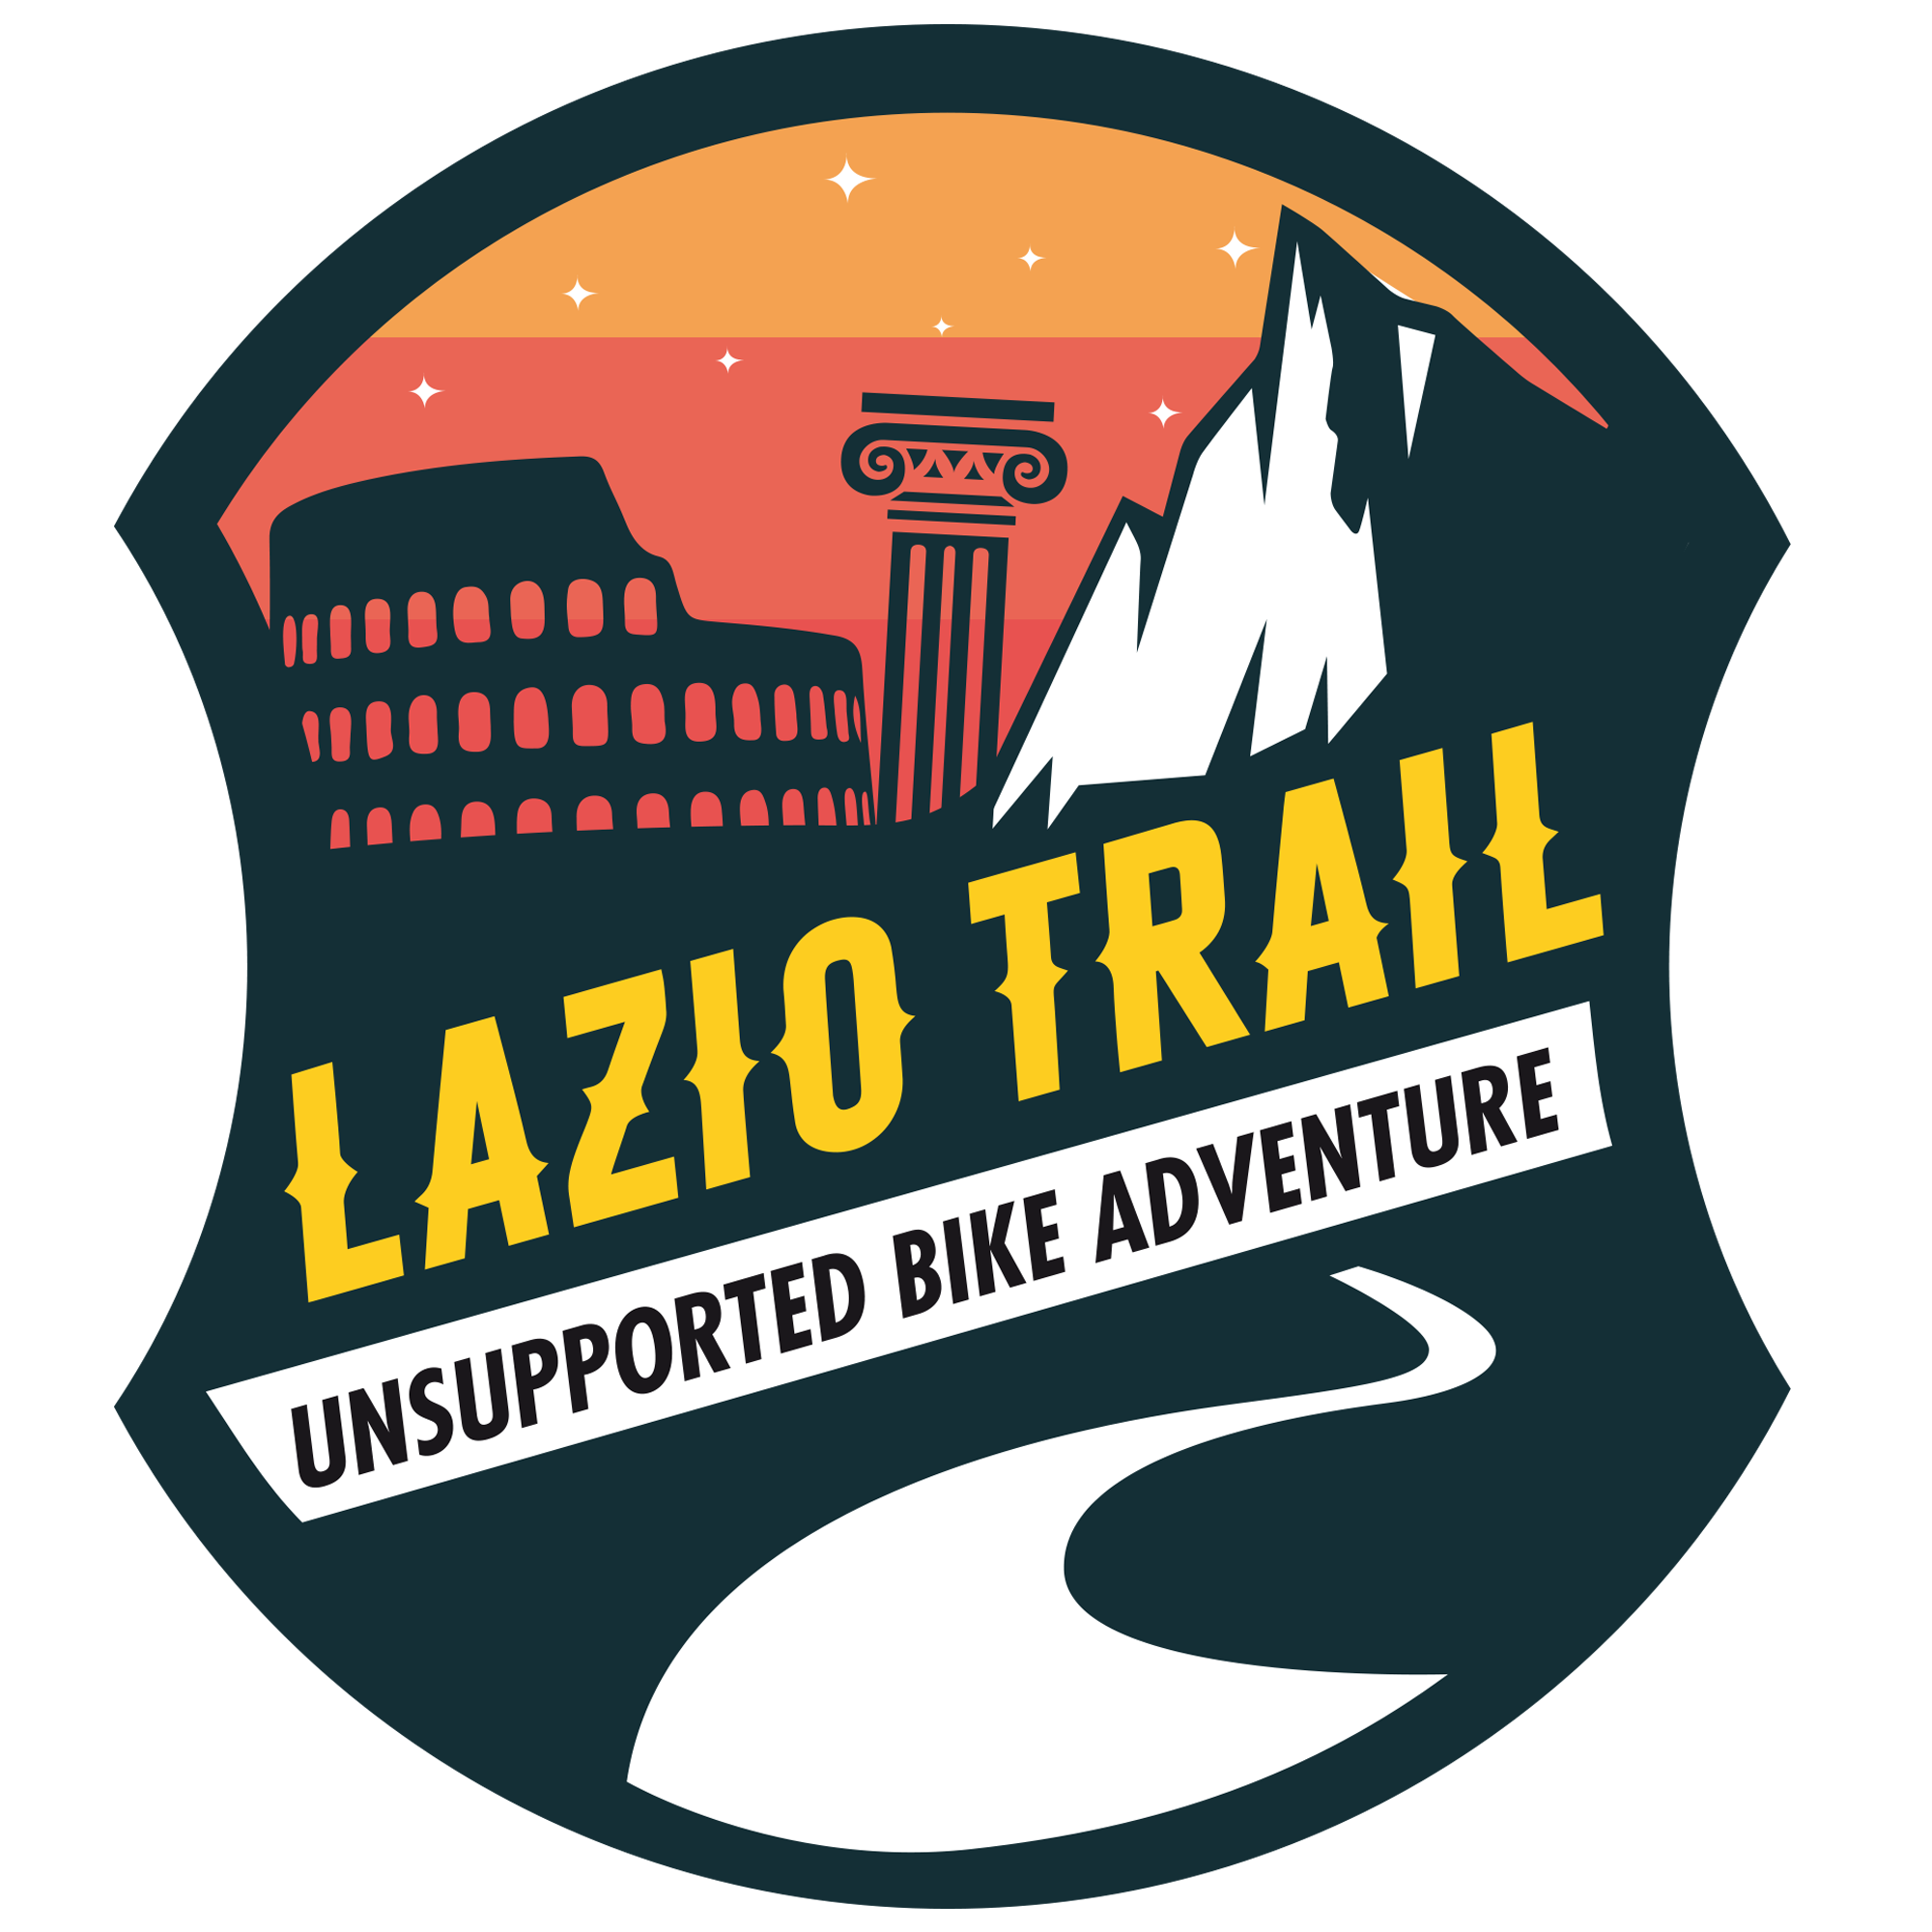 Lazio Trail Unsupported Bicycle Adventure